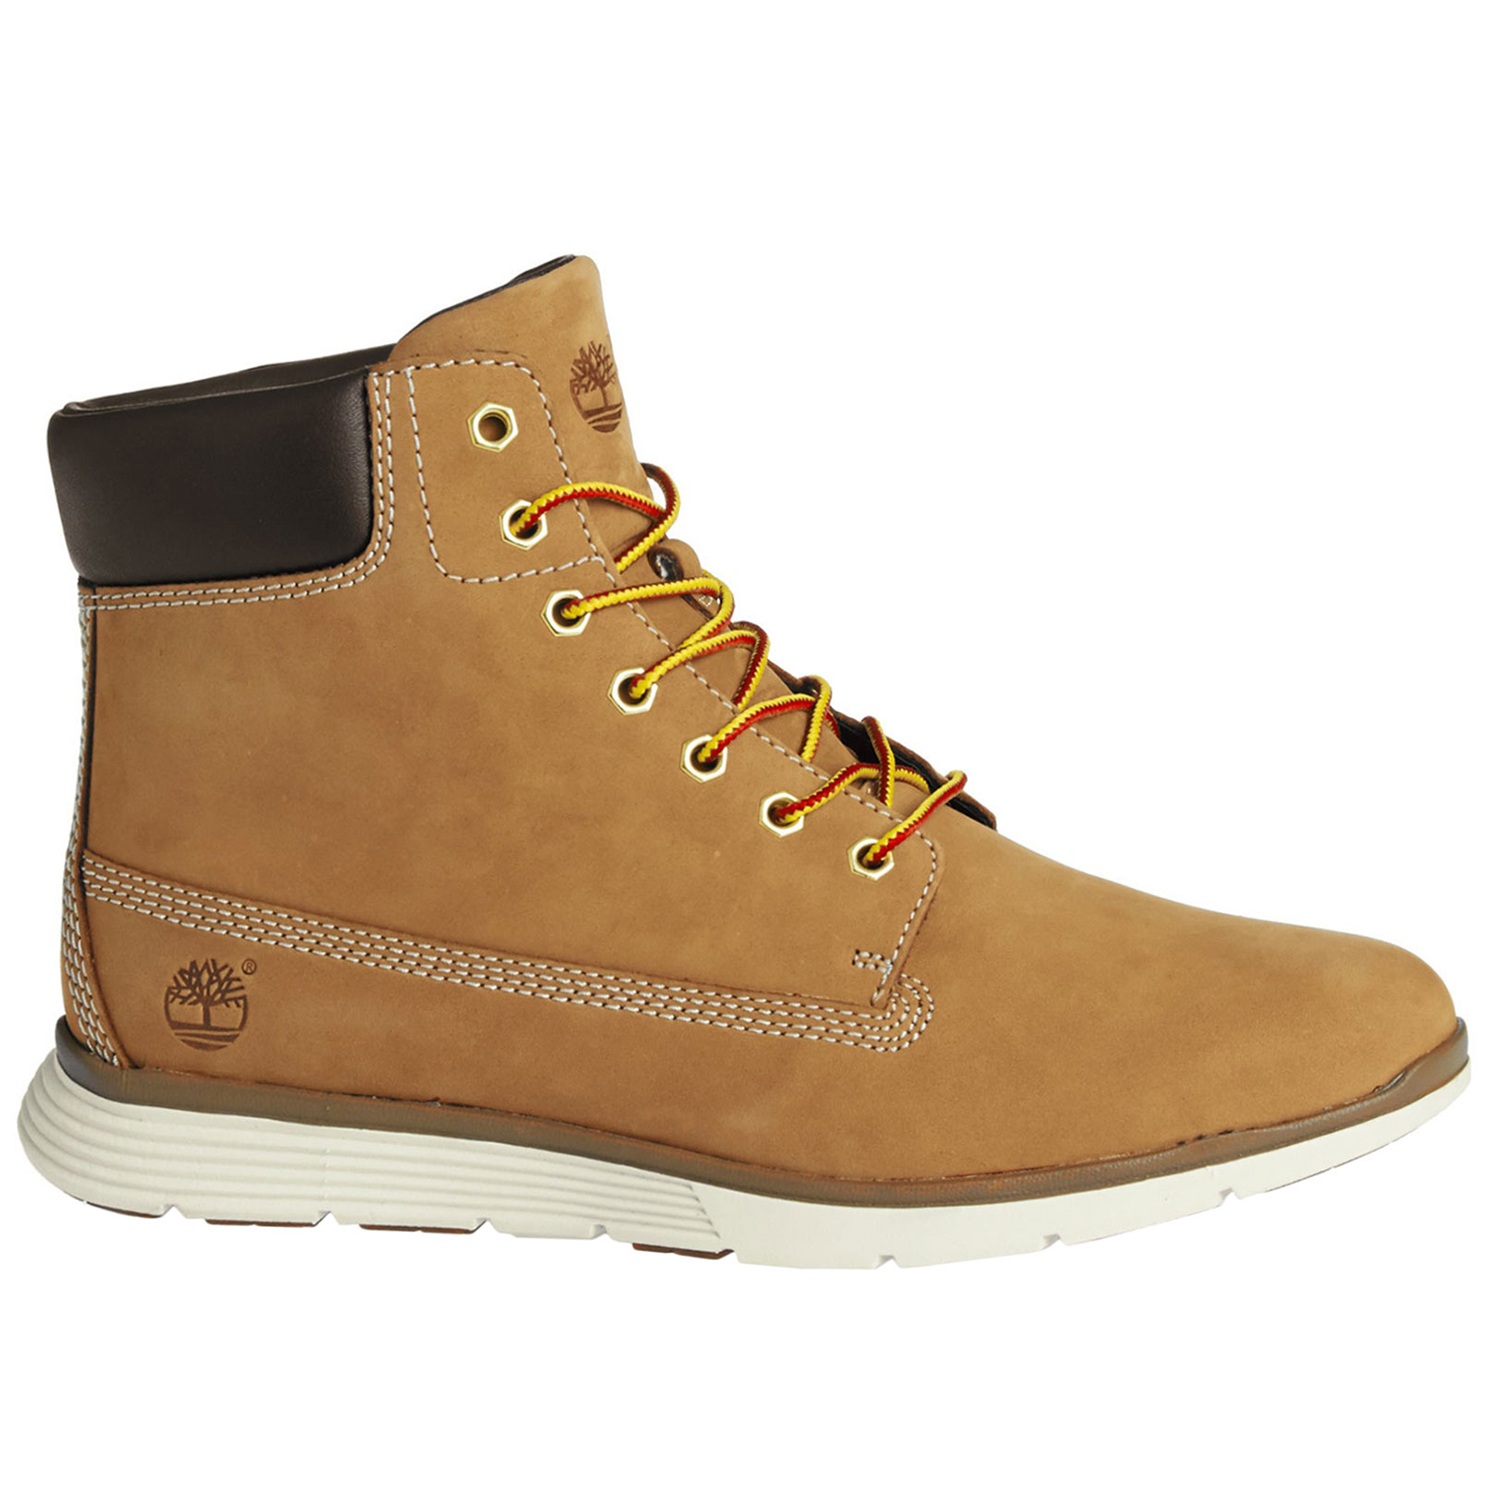 Available Blackleaf Timberland From Available Timberland Blackleaf From Timberland From Available UqMSzVp